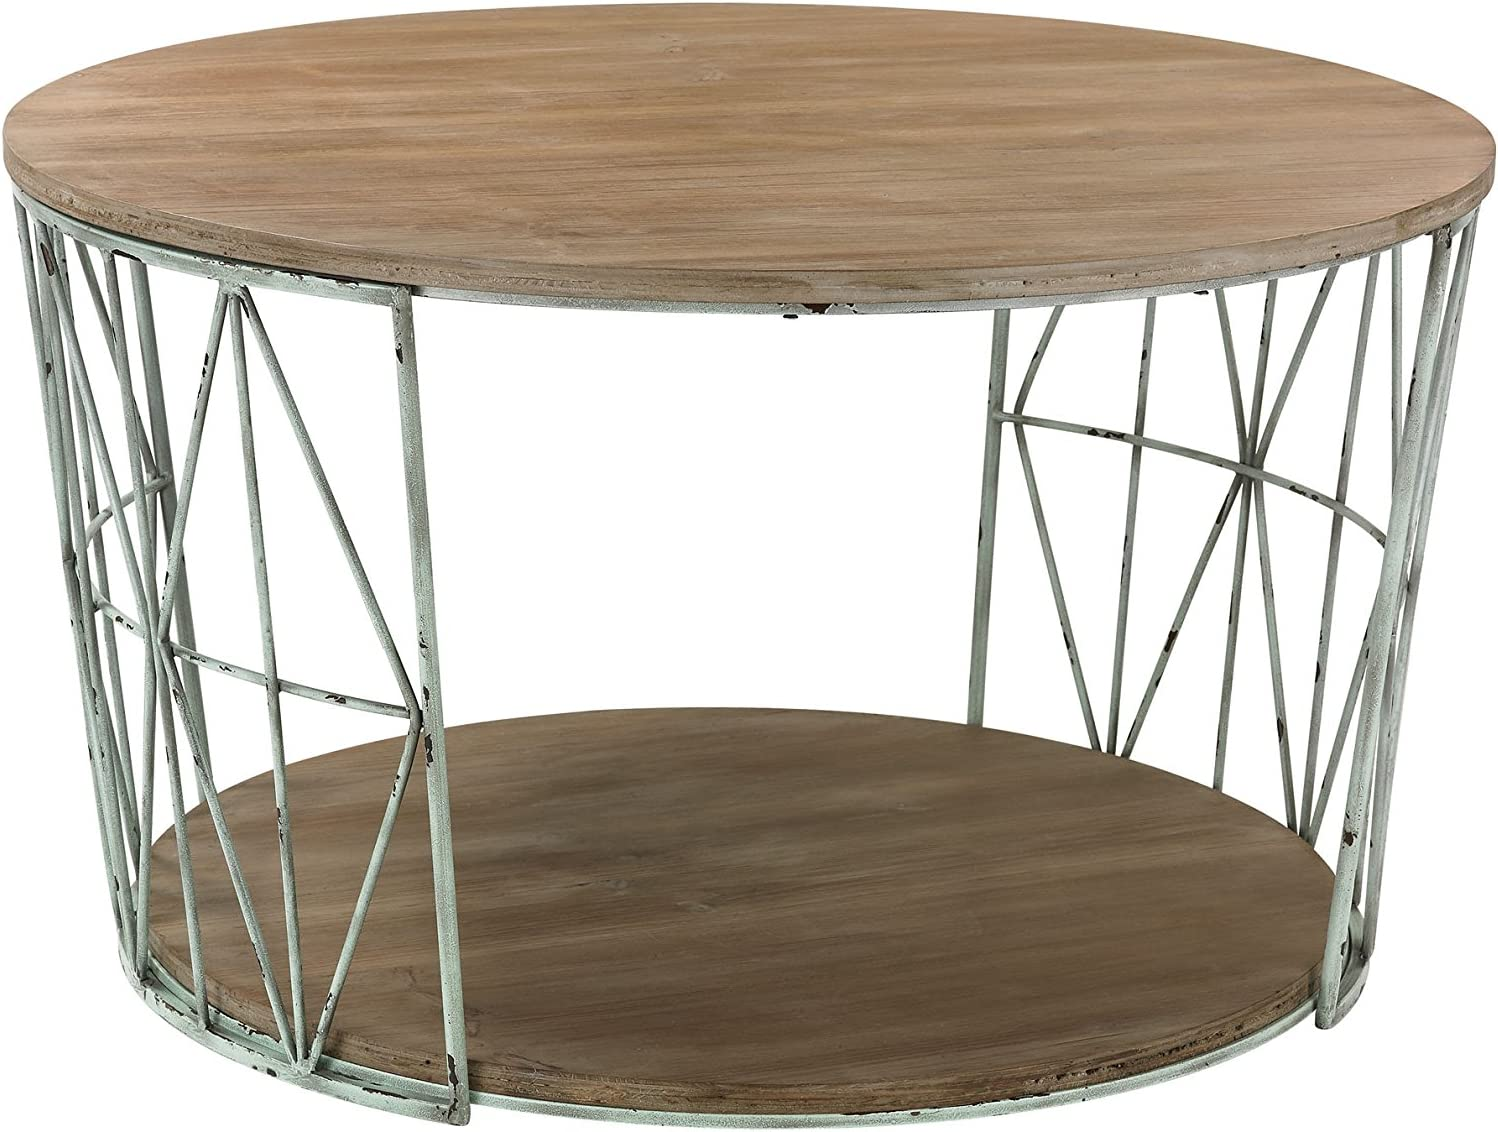 - Amazon.com : Sterling Industries Round Wood And Metal Coffee Table